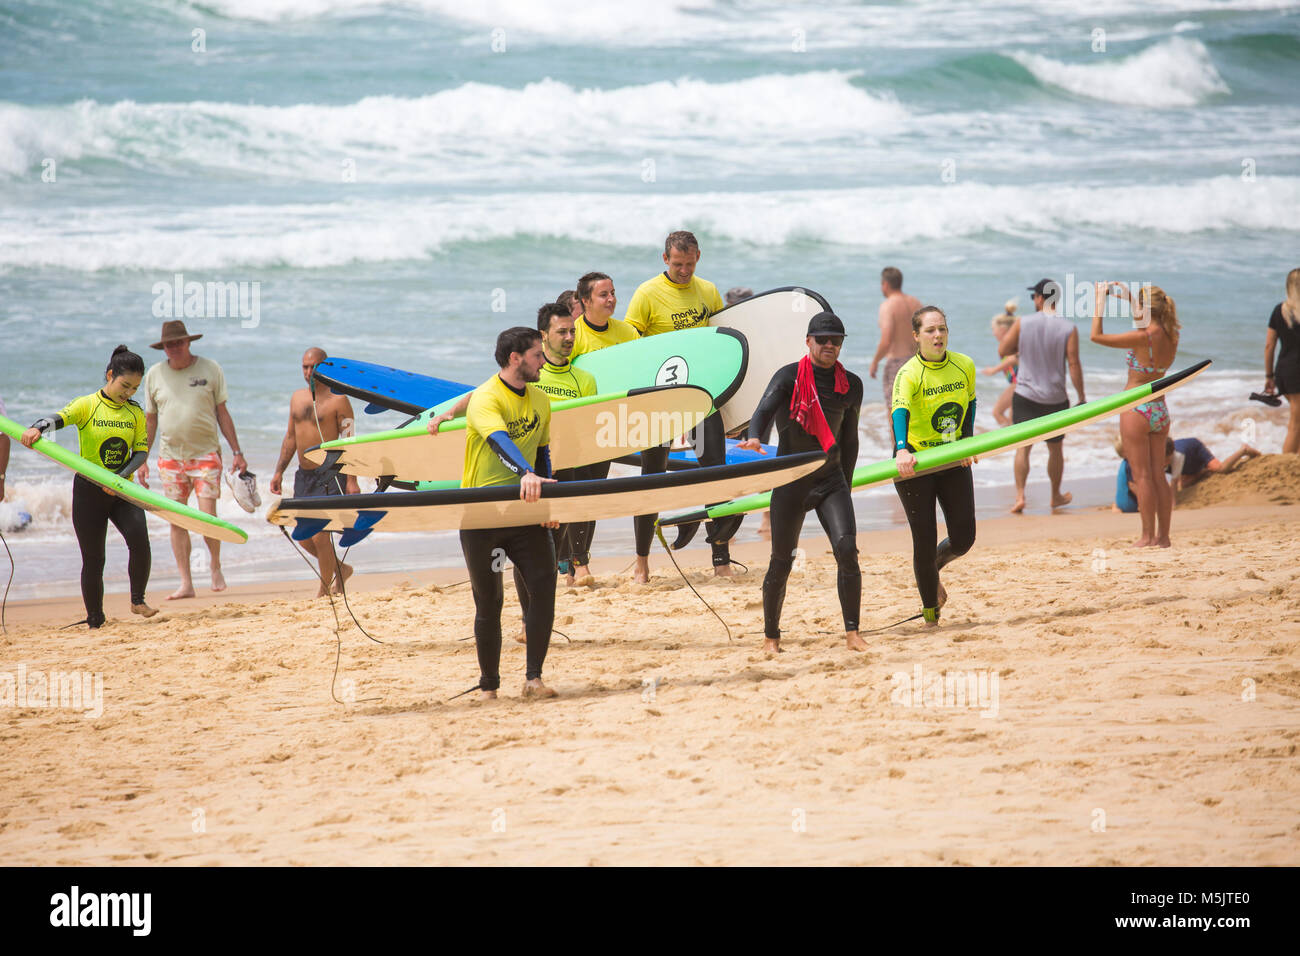 People having a surfing lesson on Manly beach with Manly surf school,Sydney,Australia - Stock Image